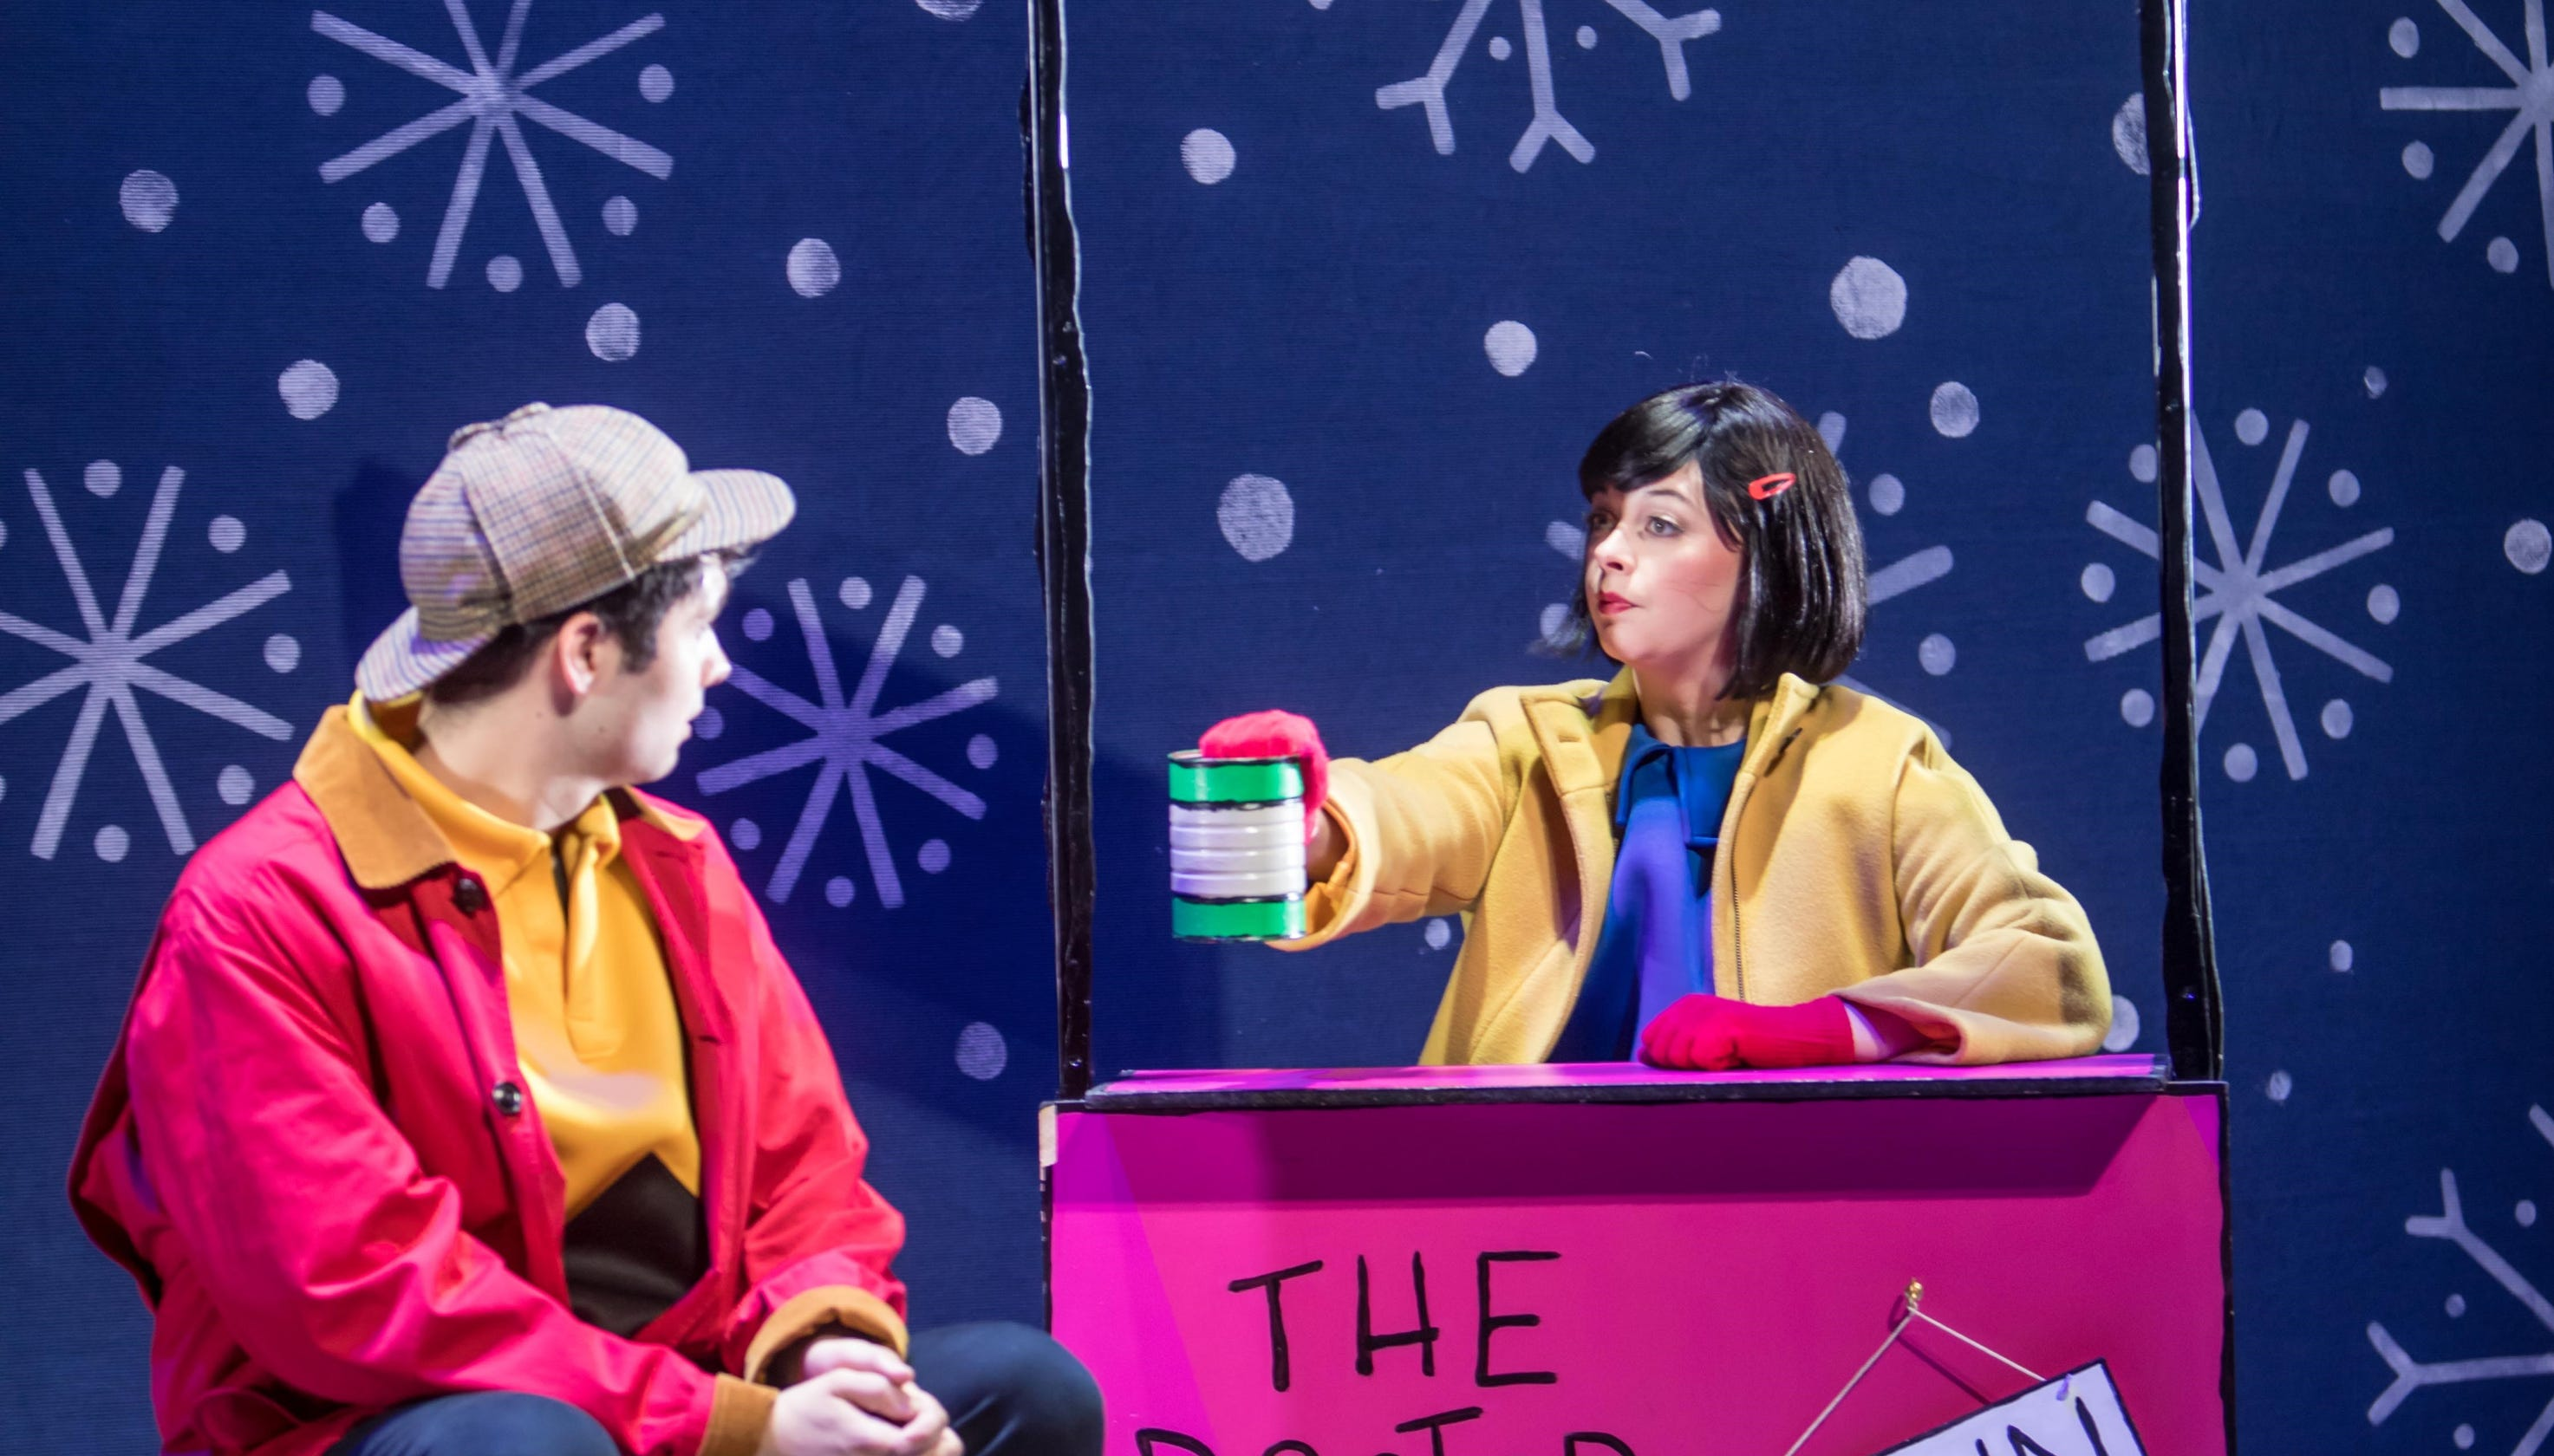 A Charlie Brown Christmas Play.Charlie Brown Christmas Characters Play Off Each Other On Stage